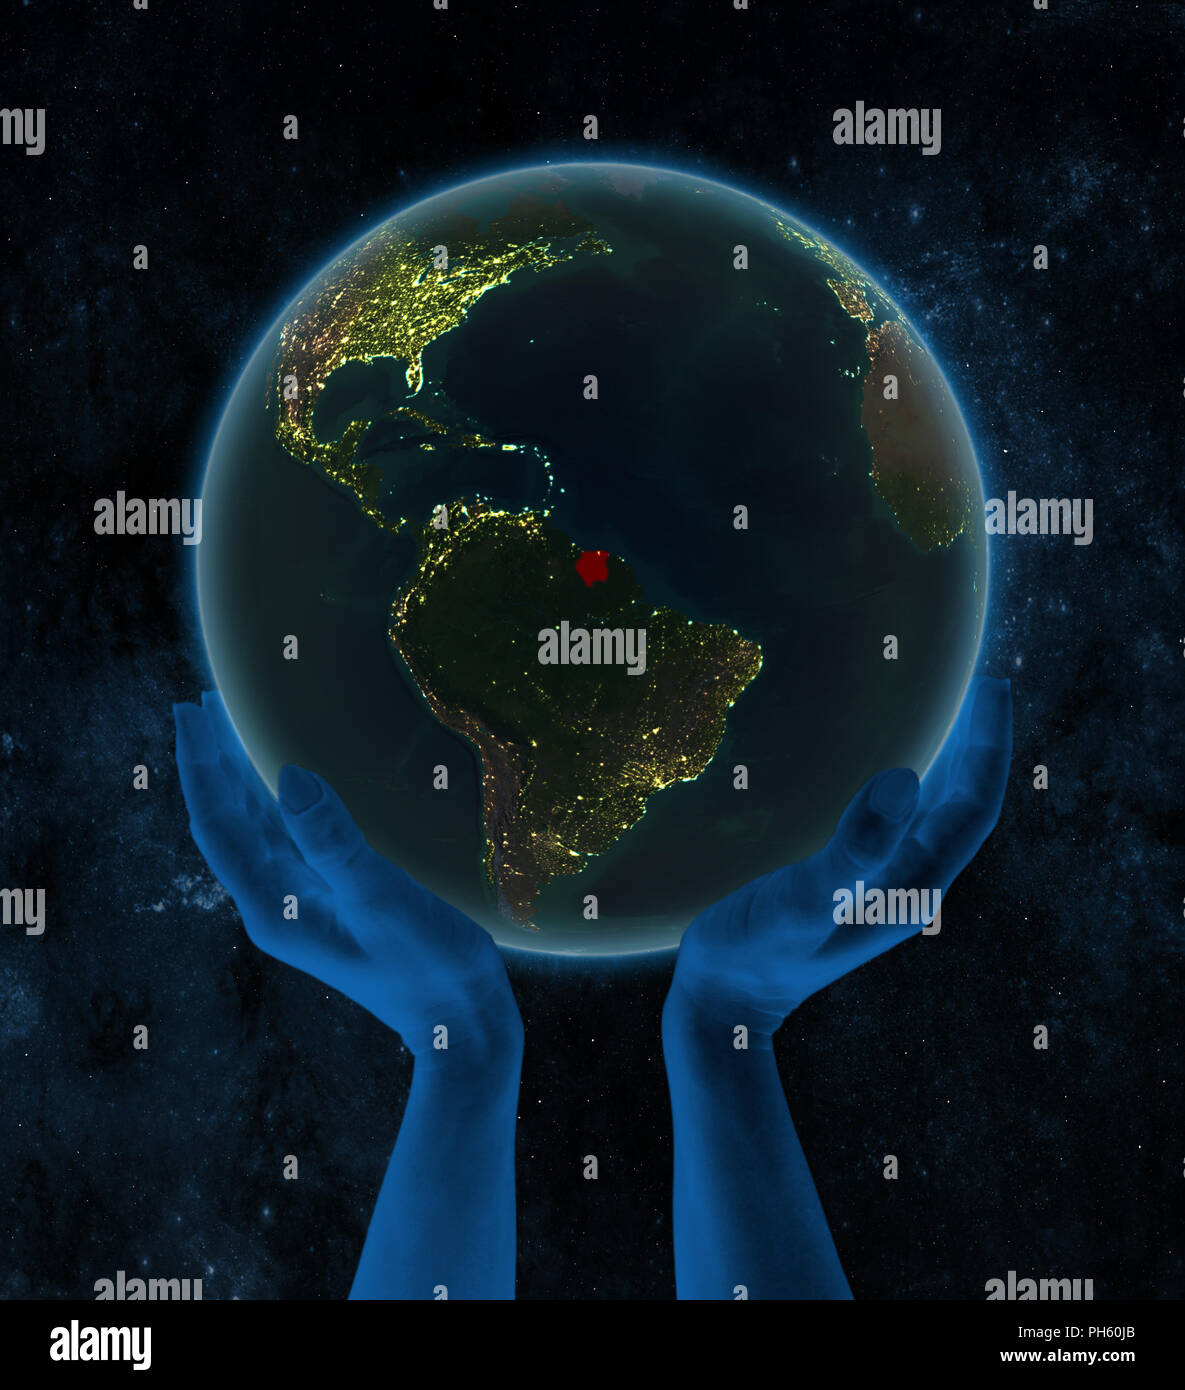 Suriname on night Earth in hands in space. 3D illustration. - Stock Image